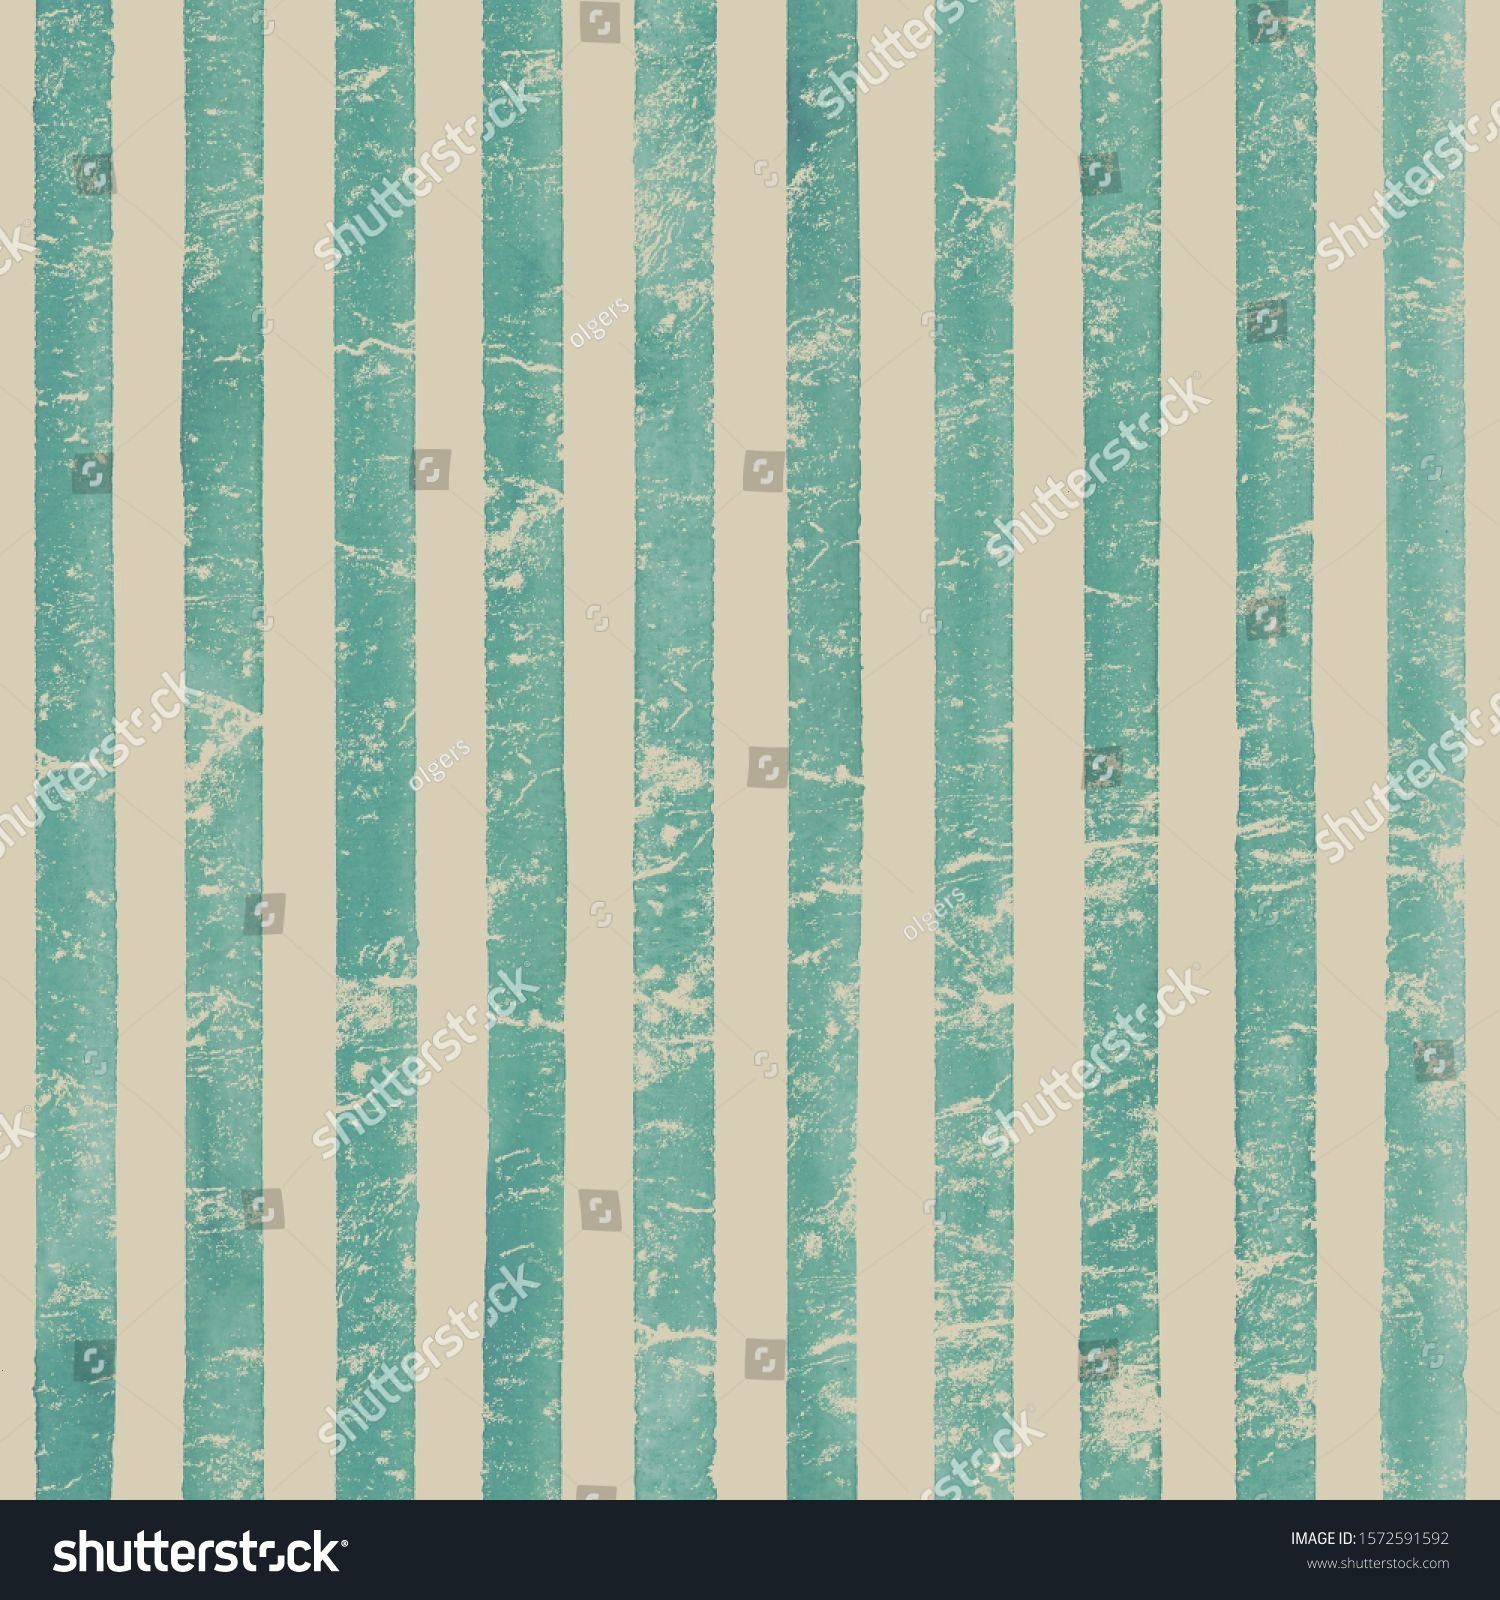 paper Watercolor stripe seamless pattern Teal turquoise stripes background Watercolour hand drawn striped old grunge texture Print for cloth design textile fabric wallpap...